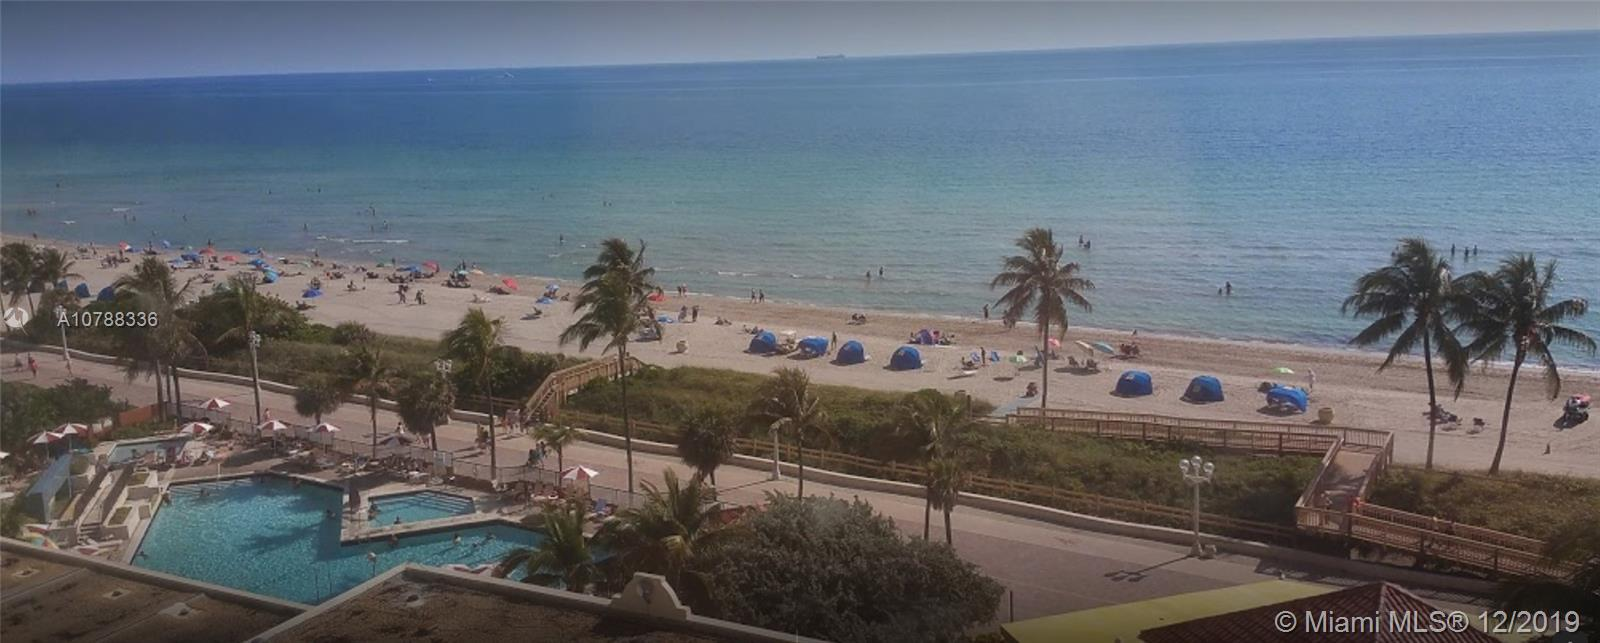 101 N Ocean Dr #685 For Sale A10788336, FL